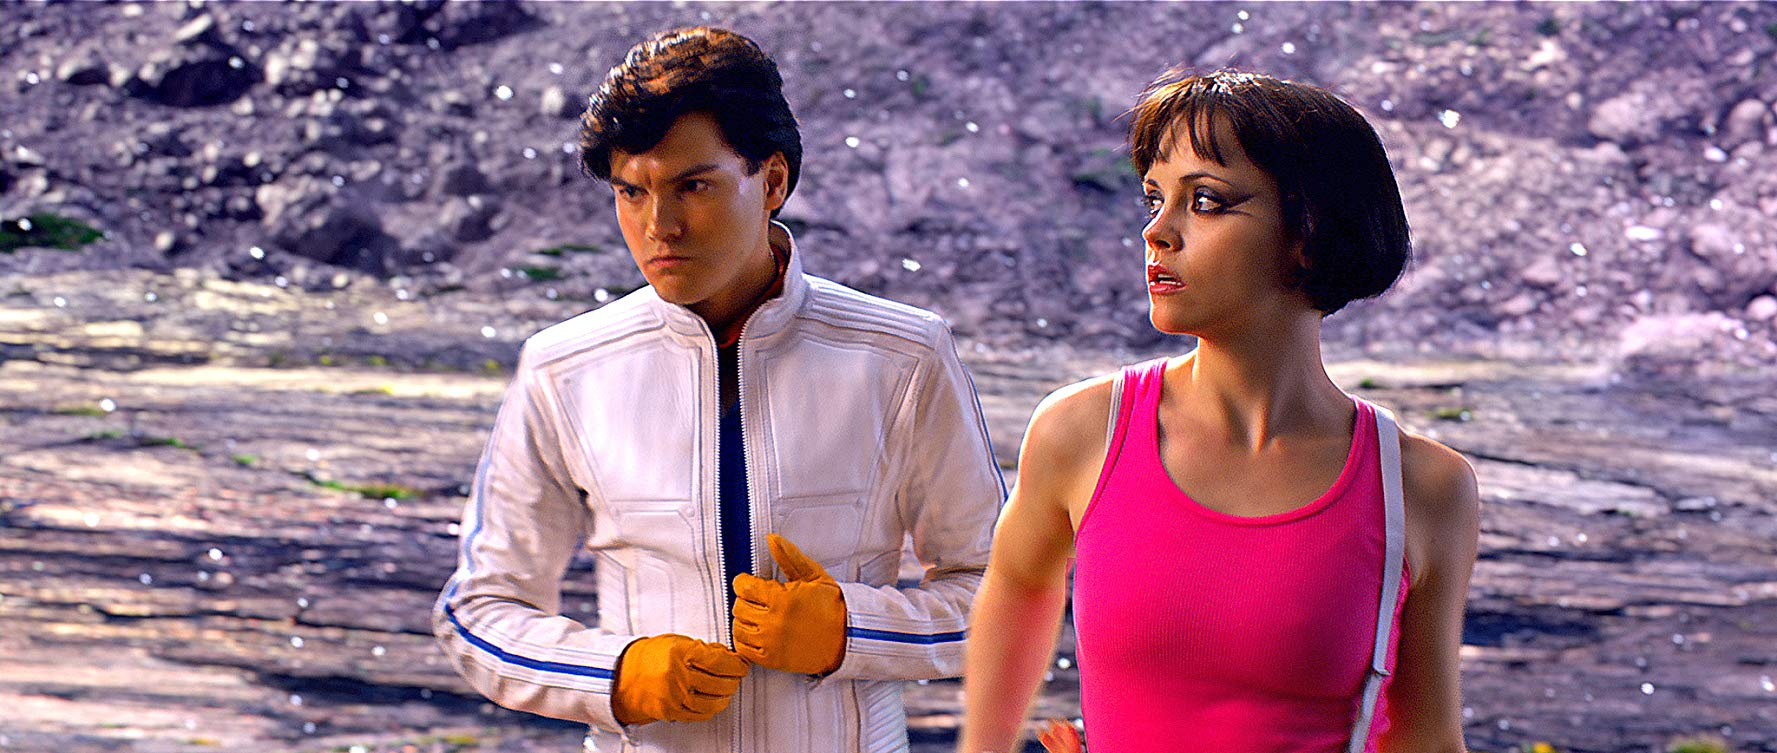 Speed Racer (Emile Hirsch) and Trixie (Christina Ricci) in Speed Racer (2008)